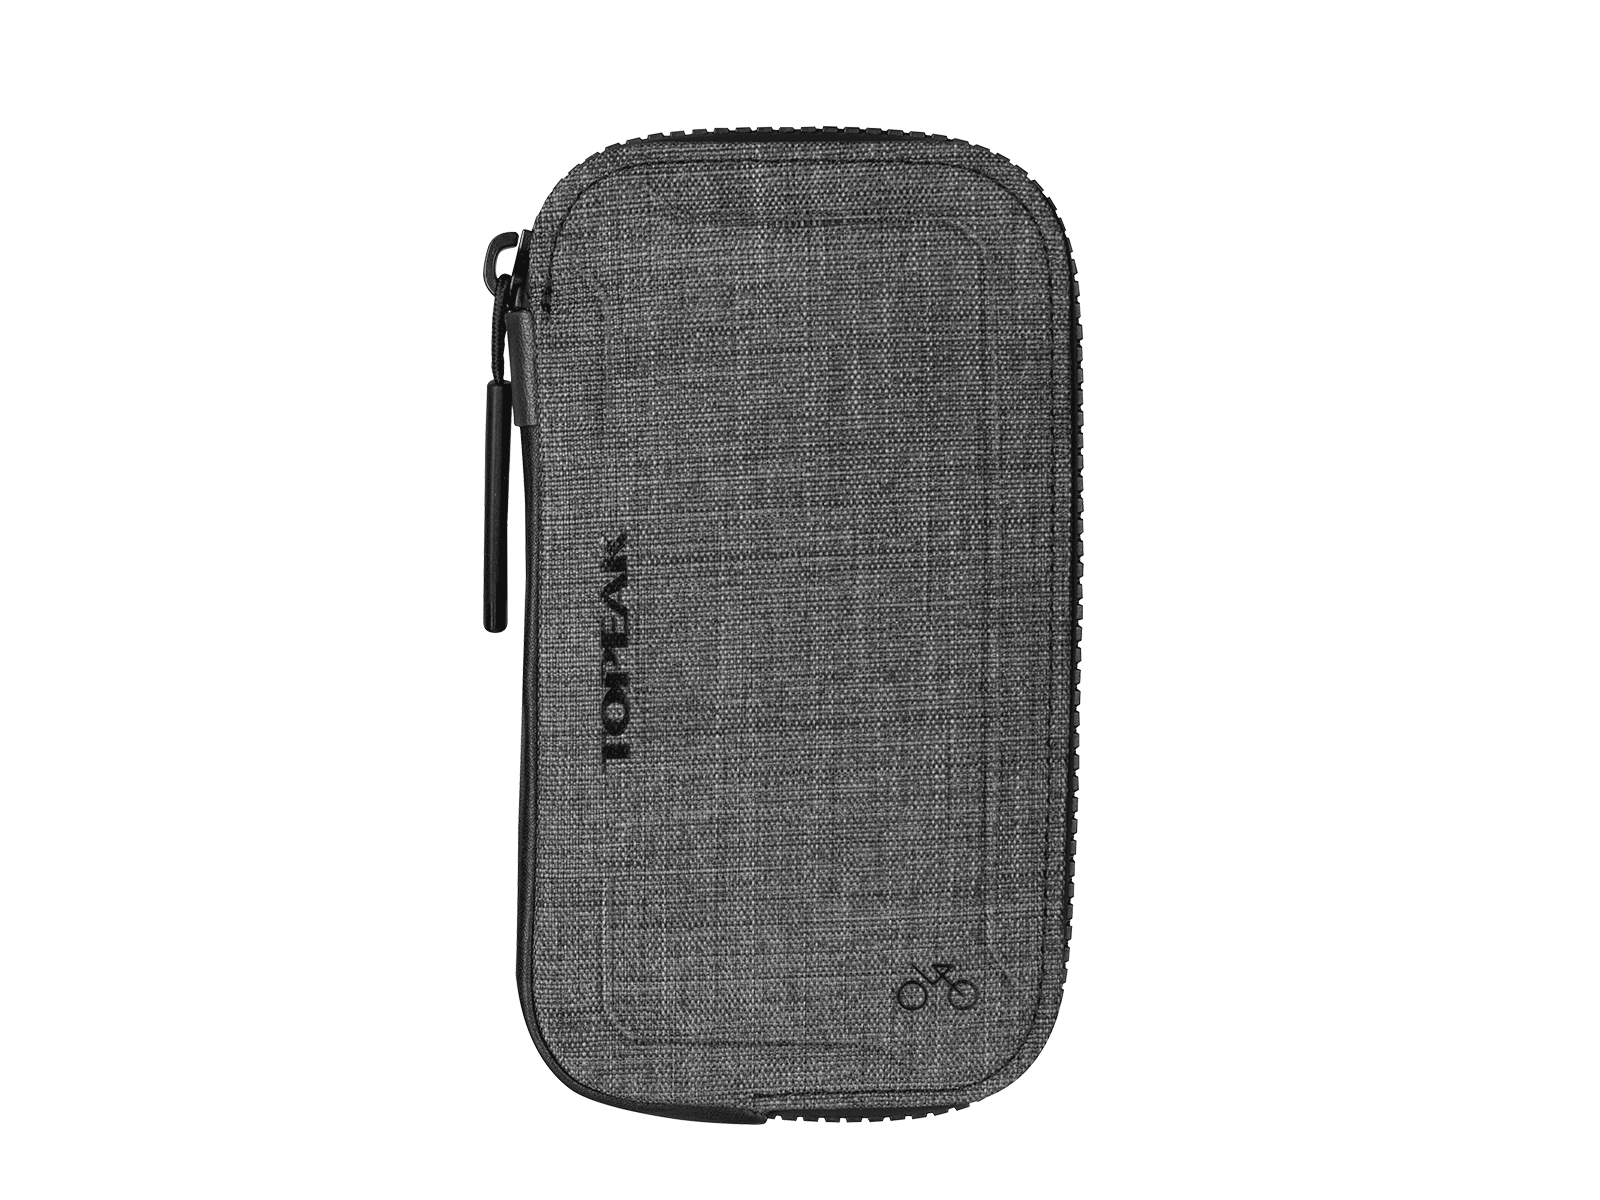 CYCLING WALLET 4.7"